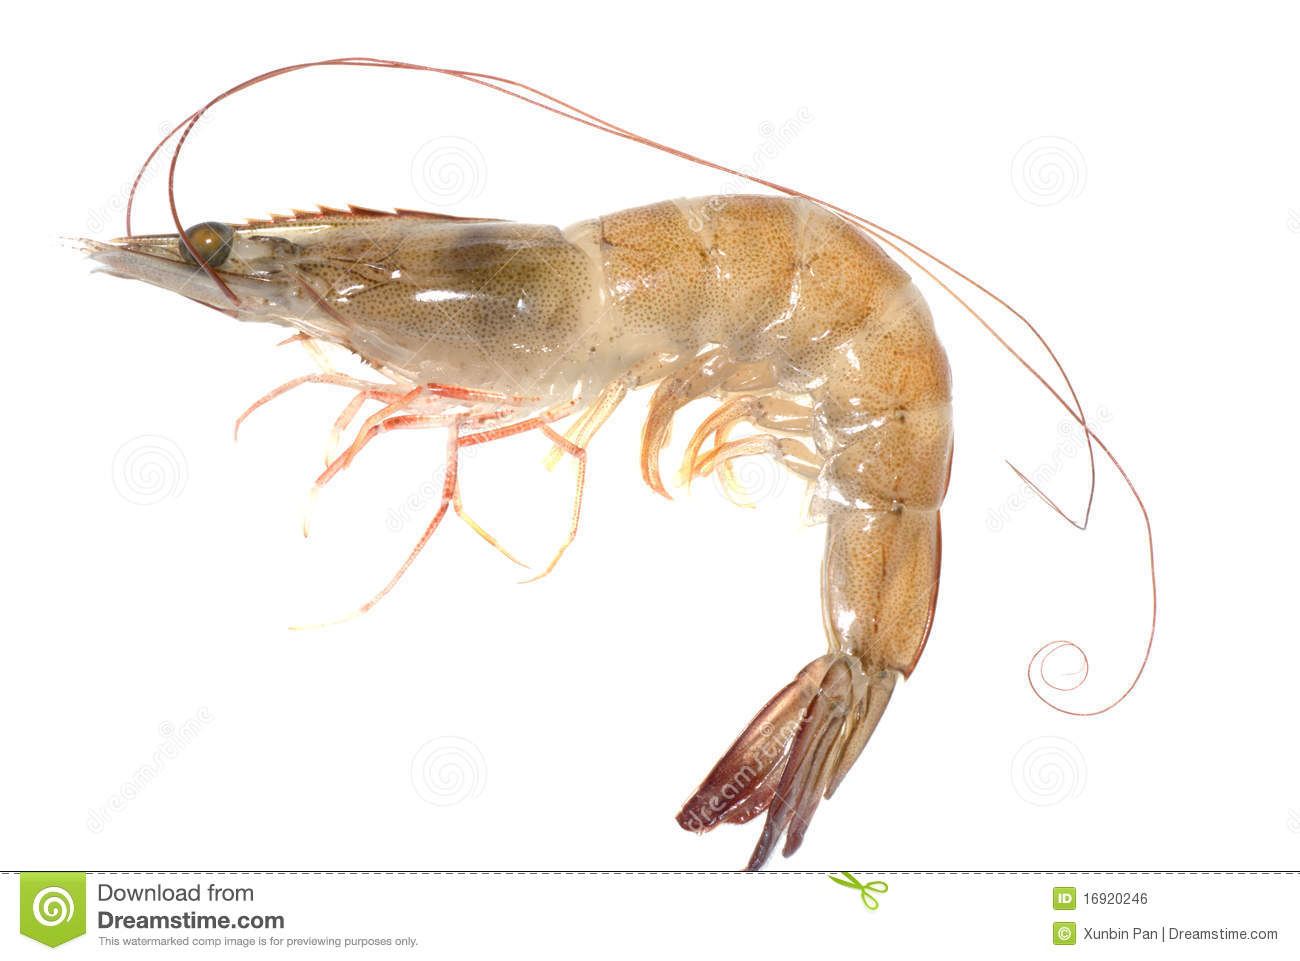 http://thumbs.dreamstime.com/z/fresh-prawn-16920246.jpg